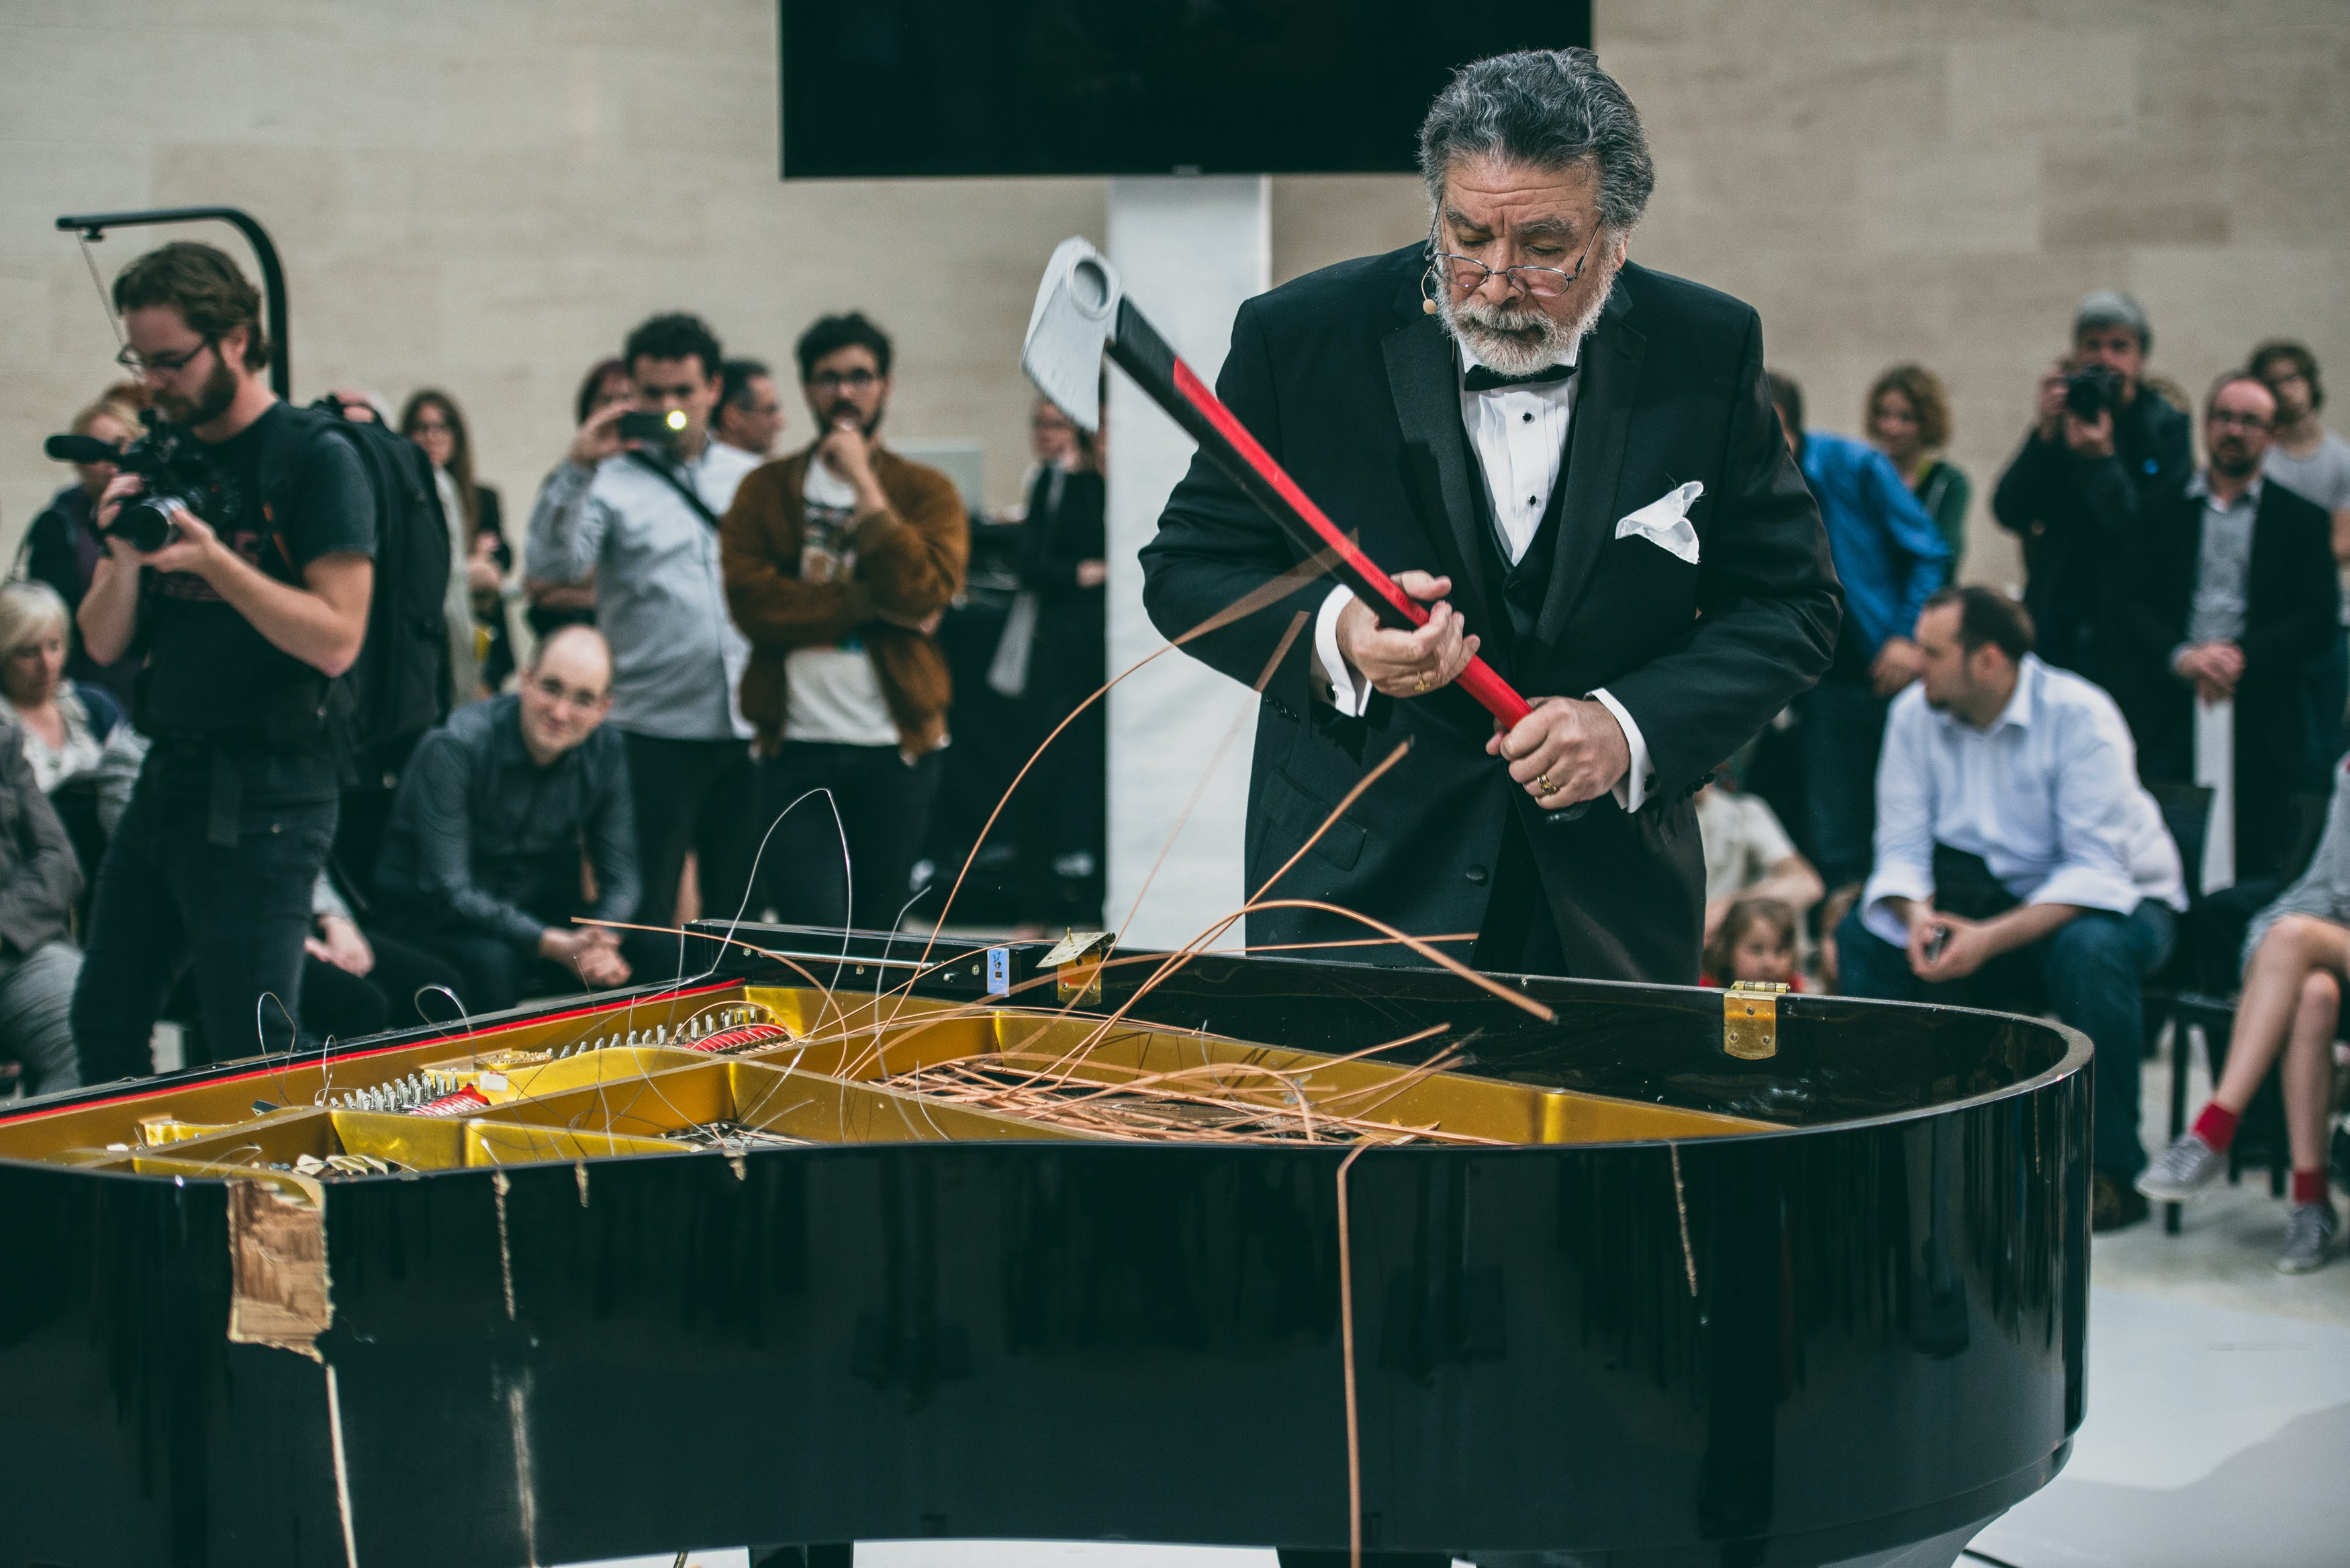 A man in a tuxedo holds an axe in front of a piano with an open top and strings sticking out.